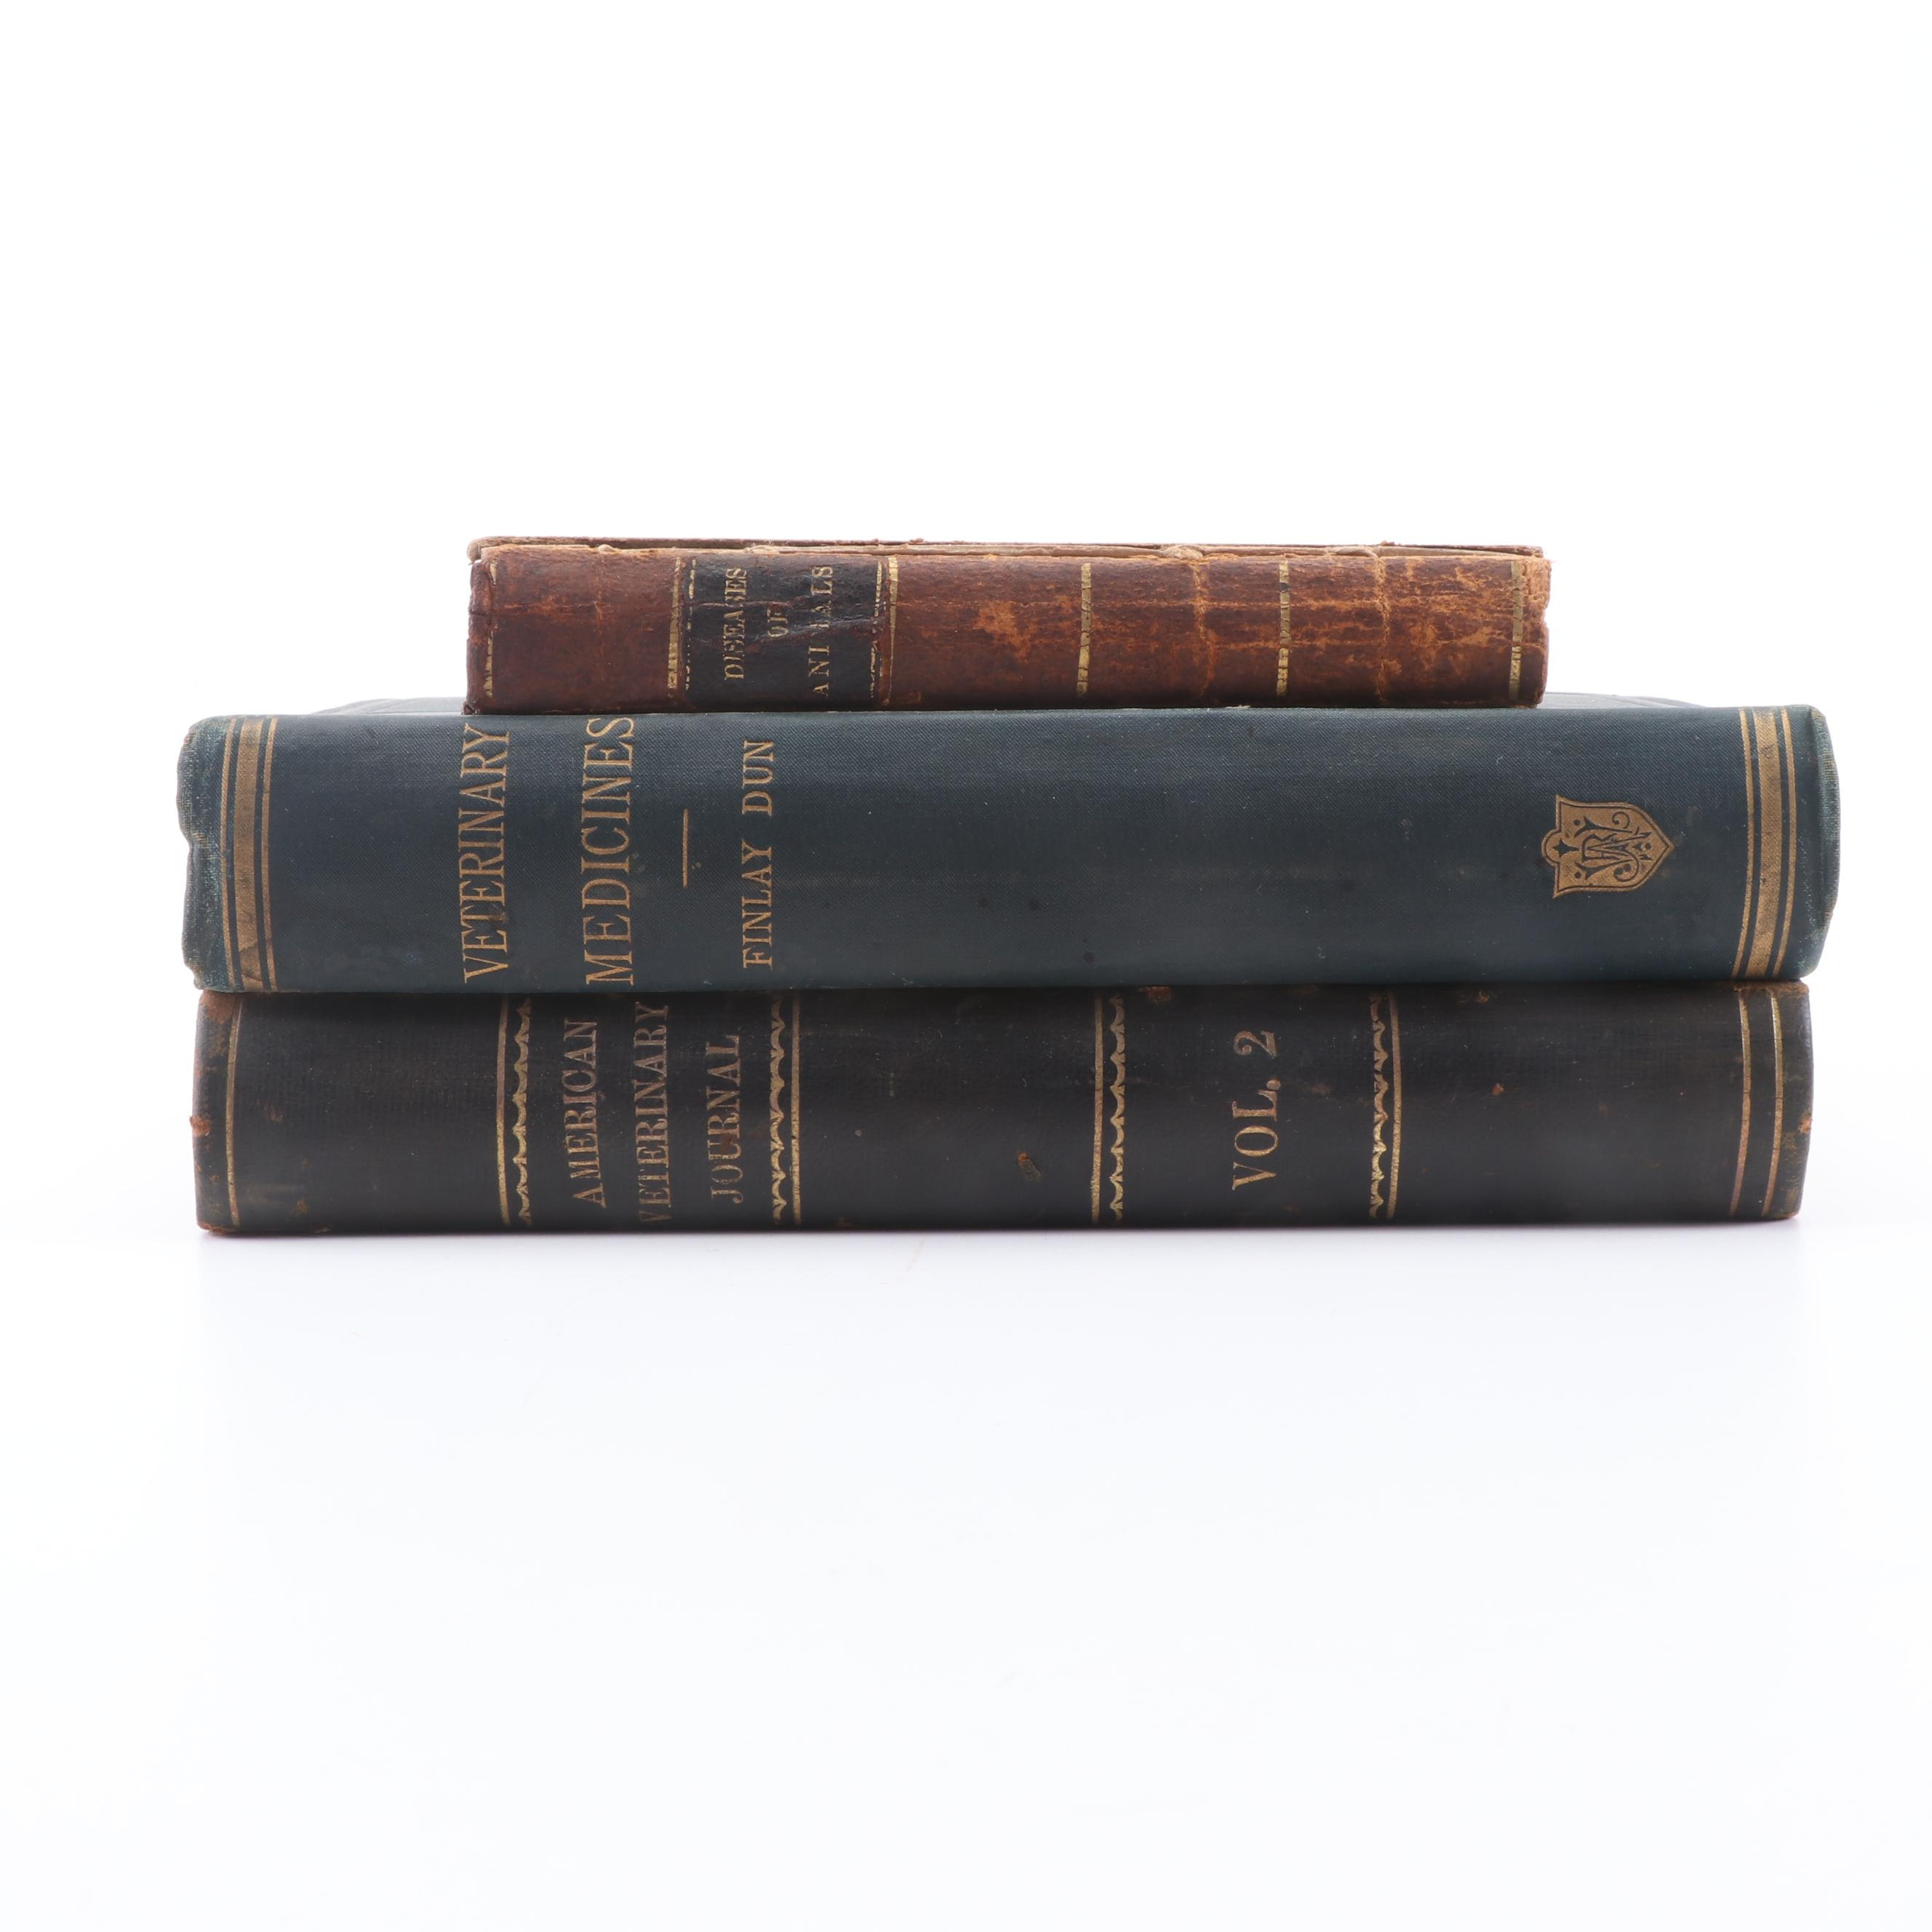 Mid to Late 19th Century Veterinary Books